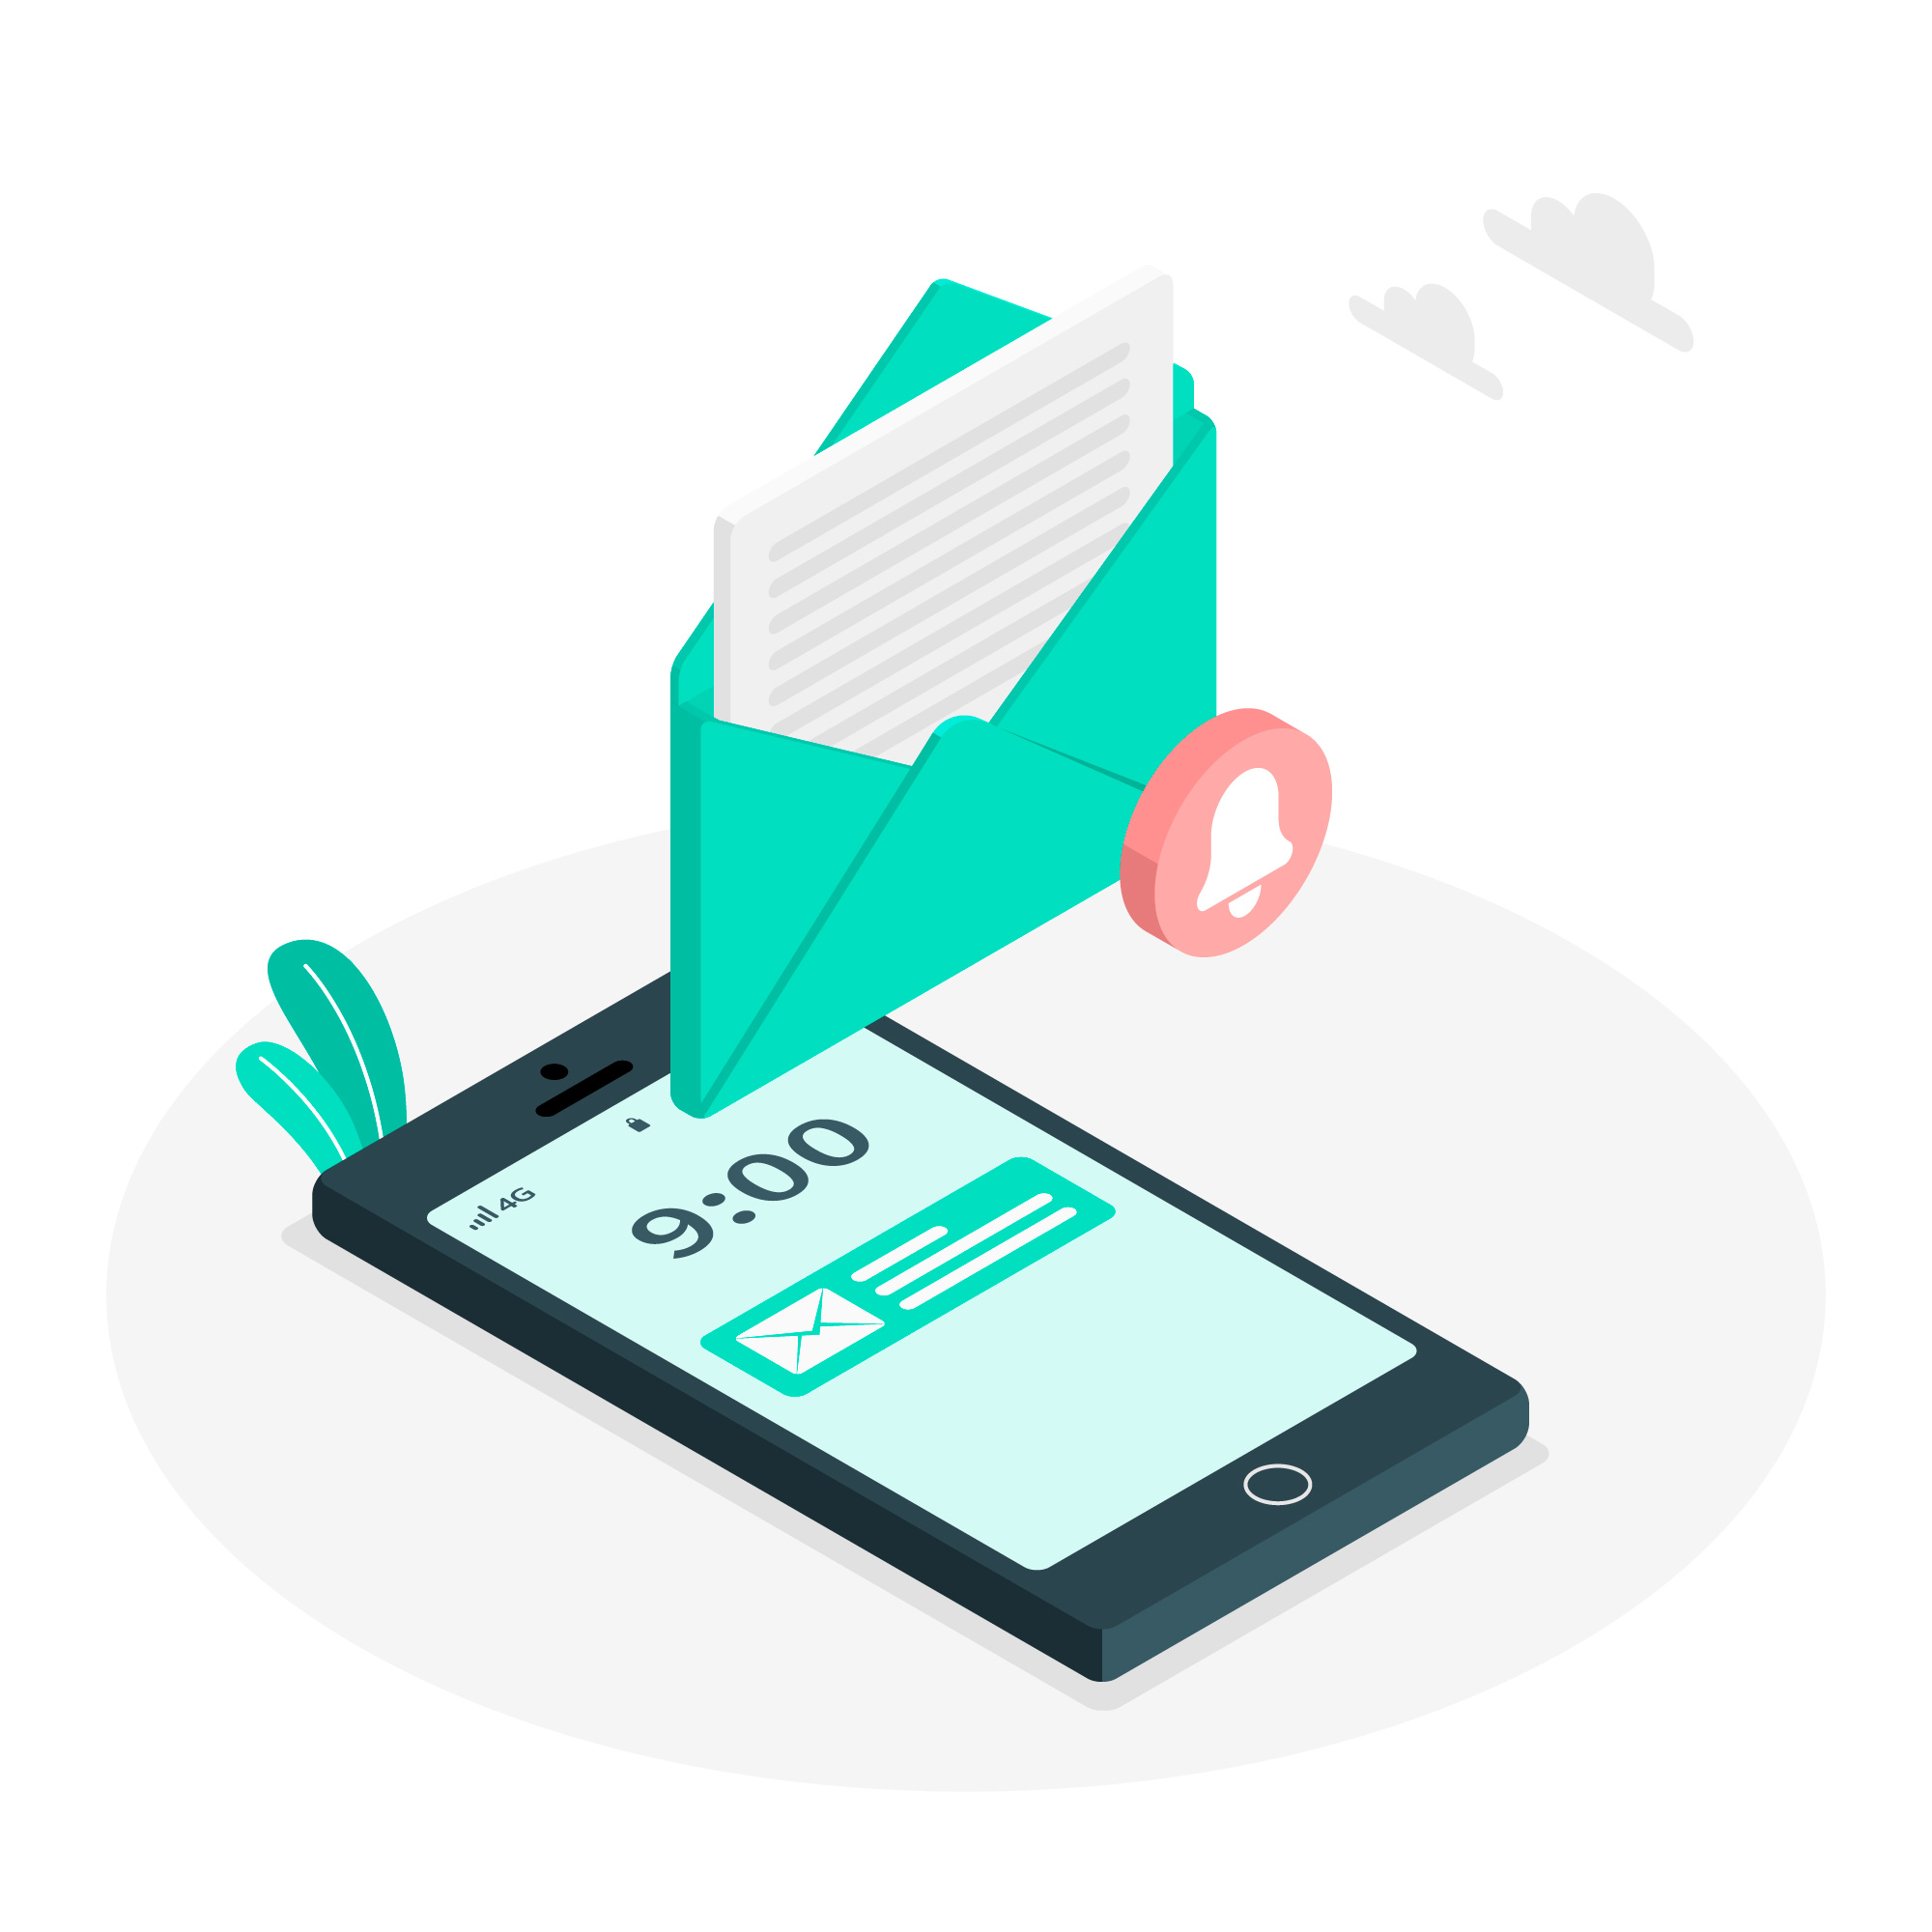 routee case study smsbox